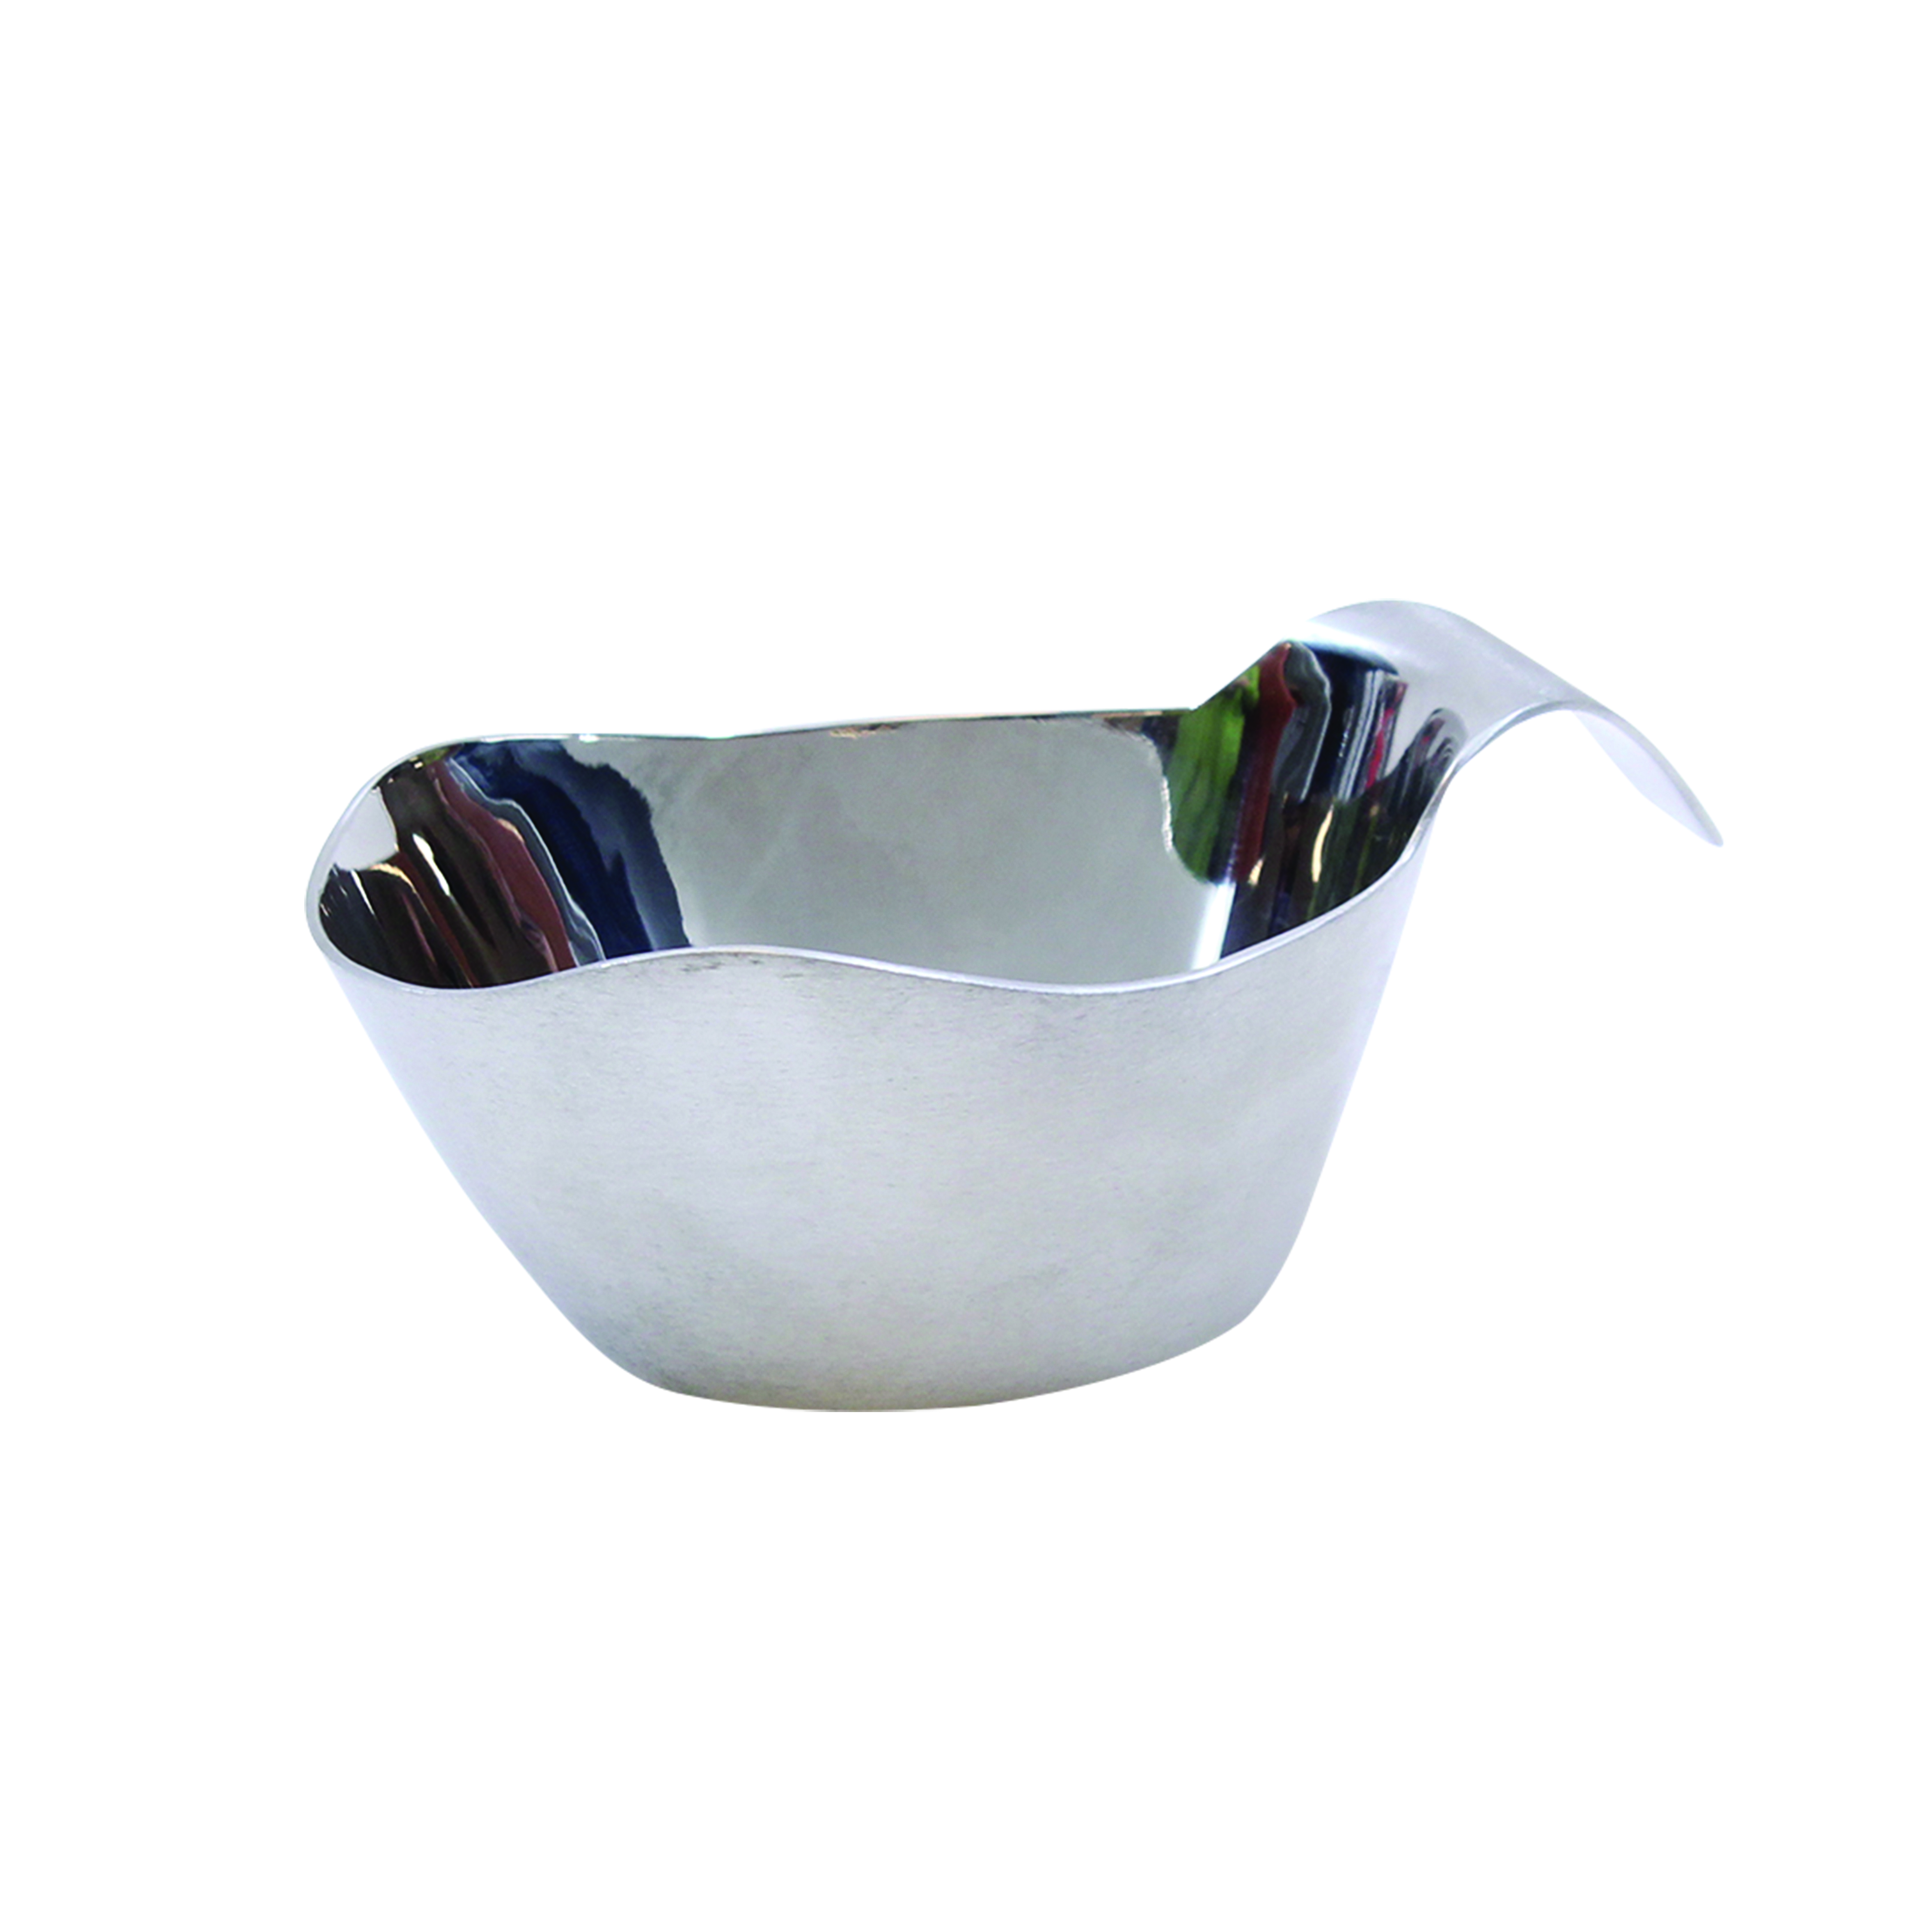 TableCraft Products 9808 gravy sauce boat